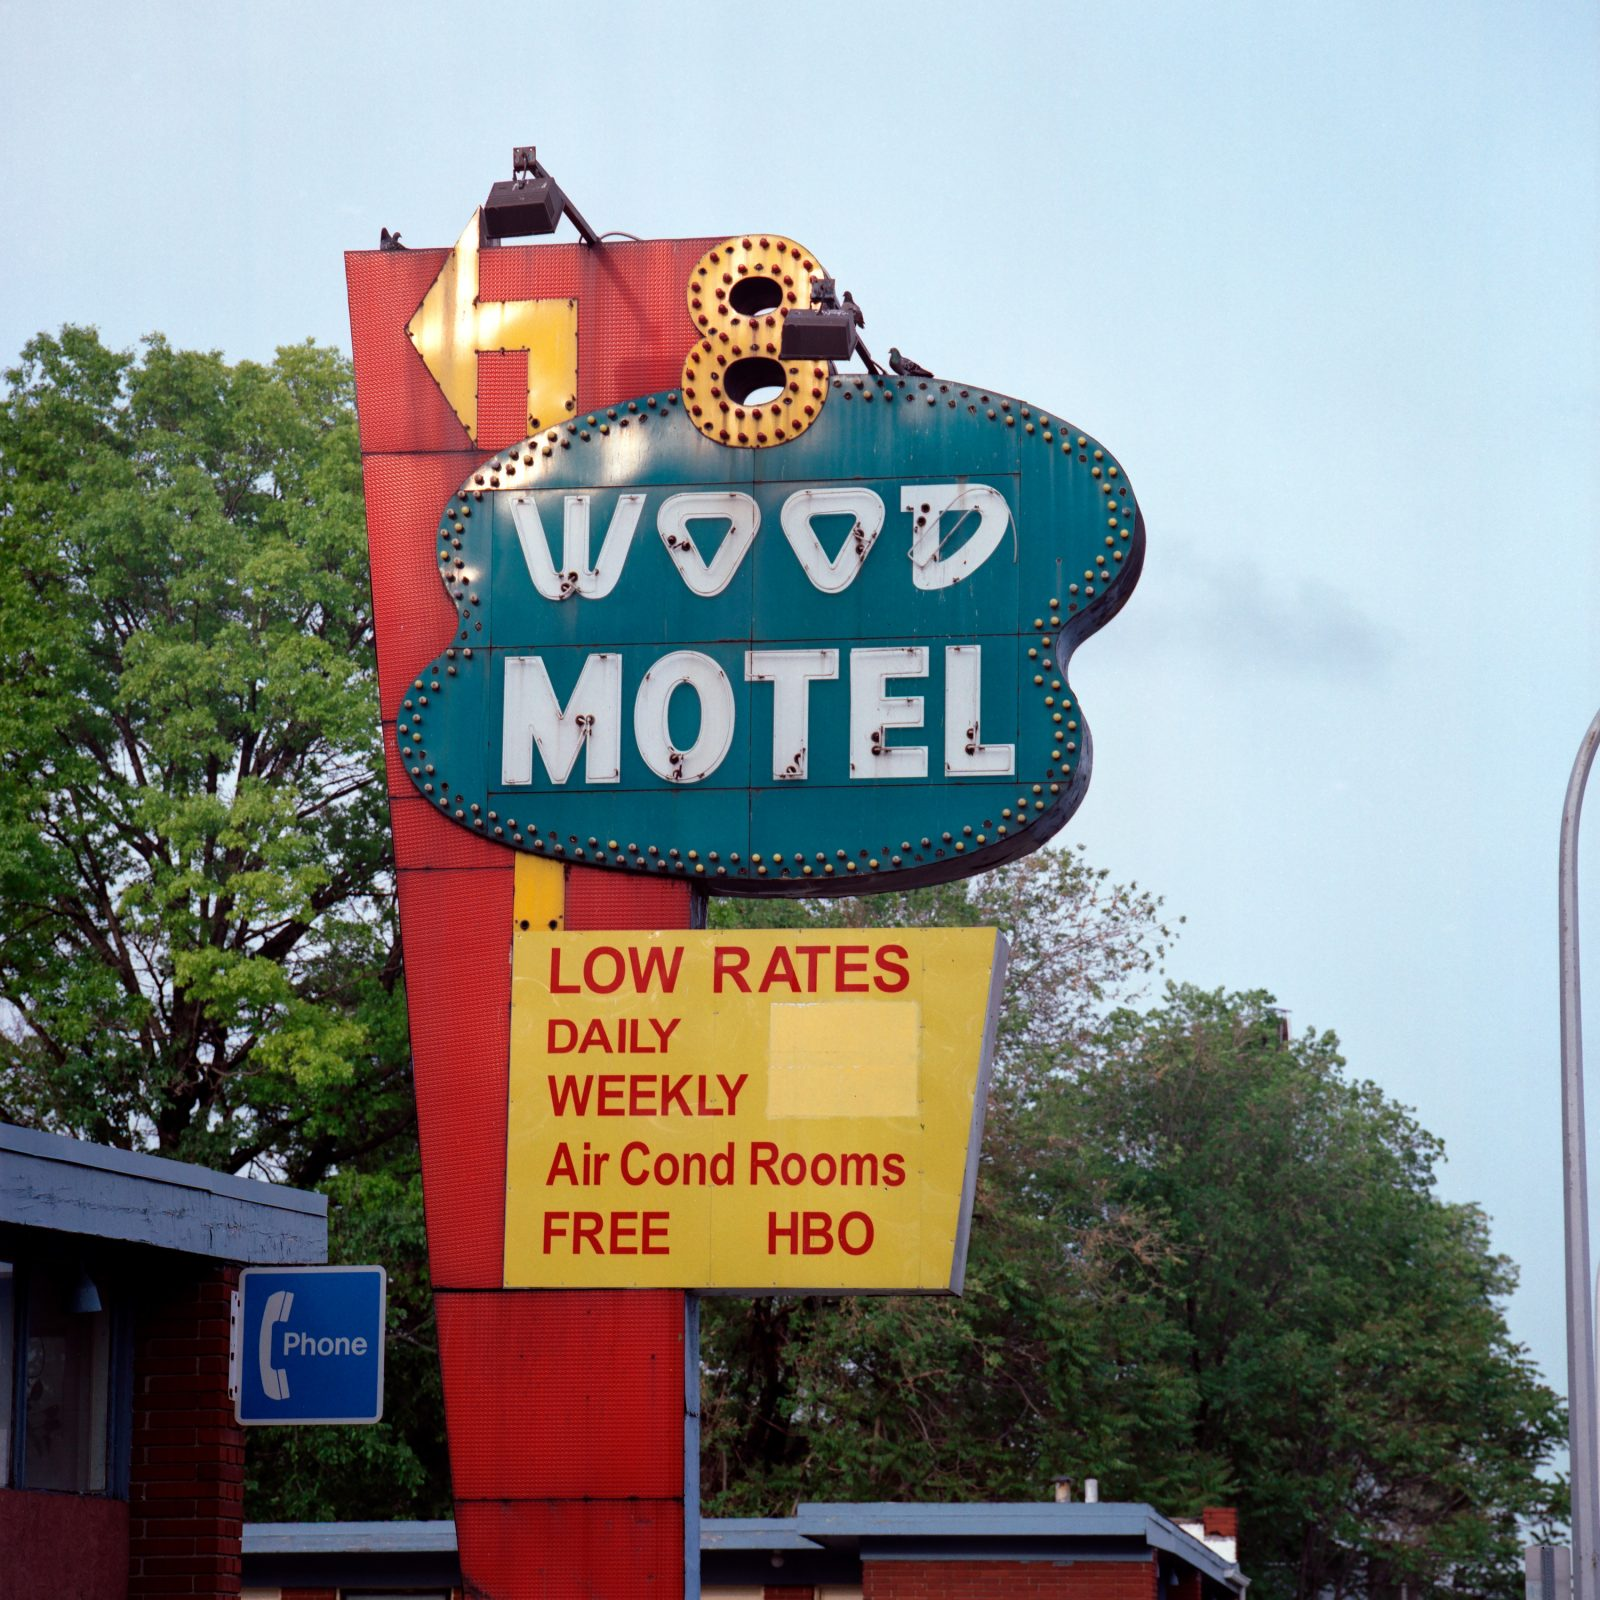 8 Wood Motel sign. Detroit, Michigan.